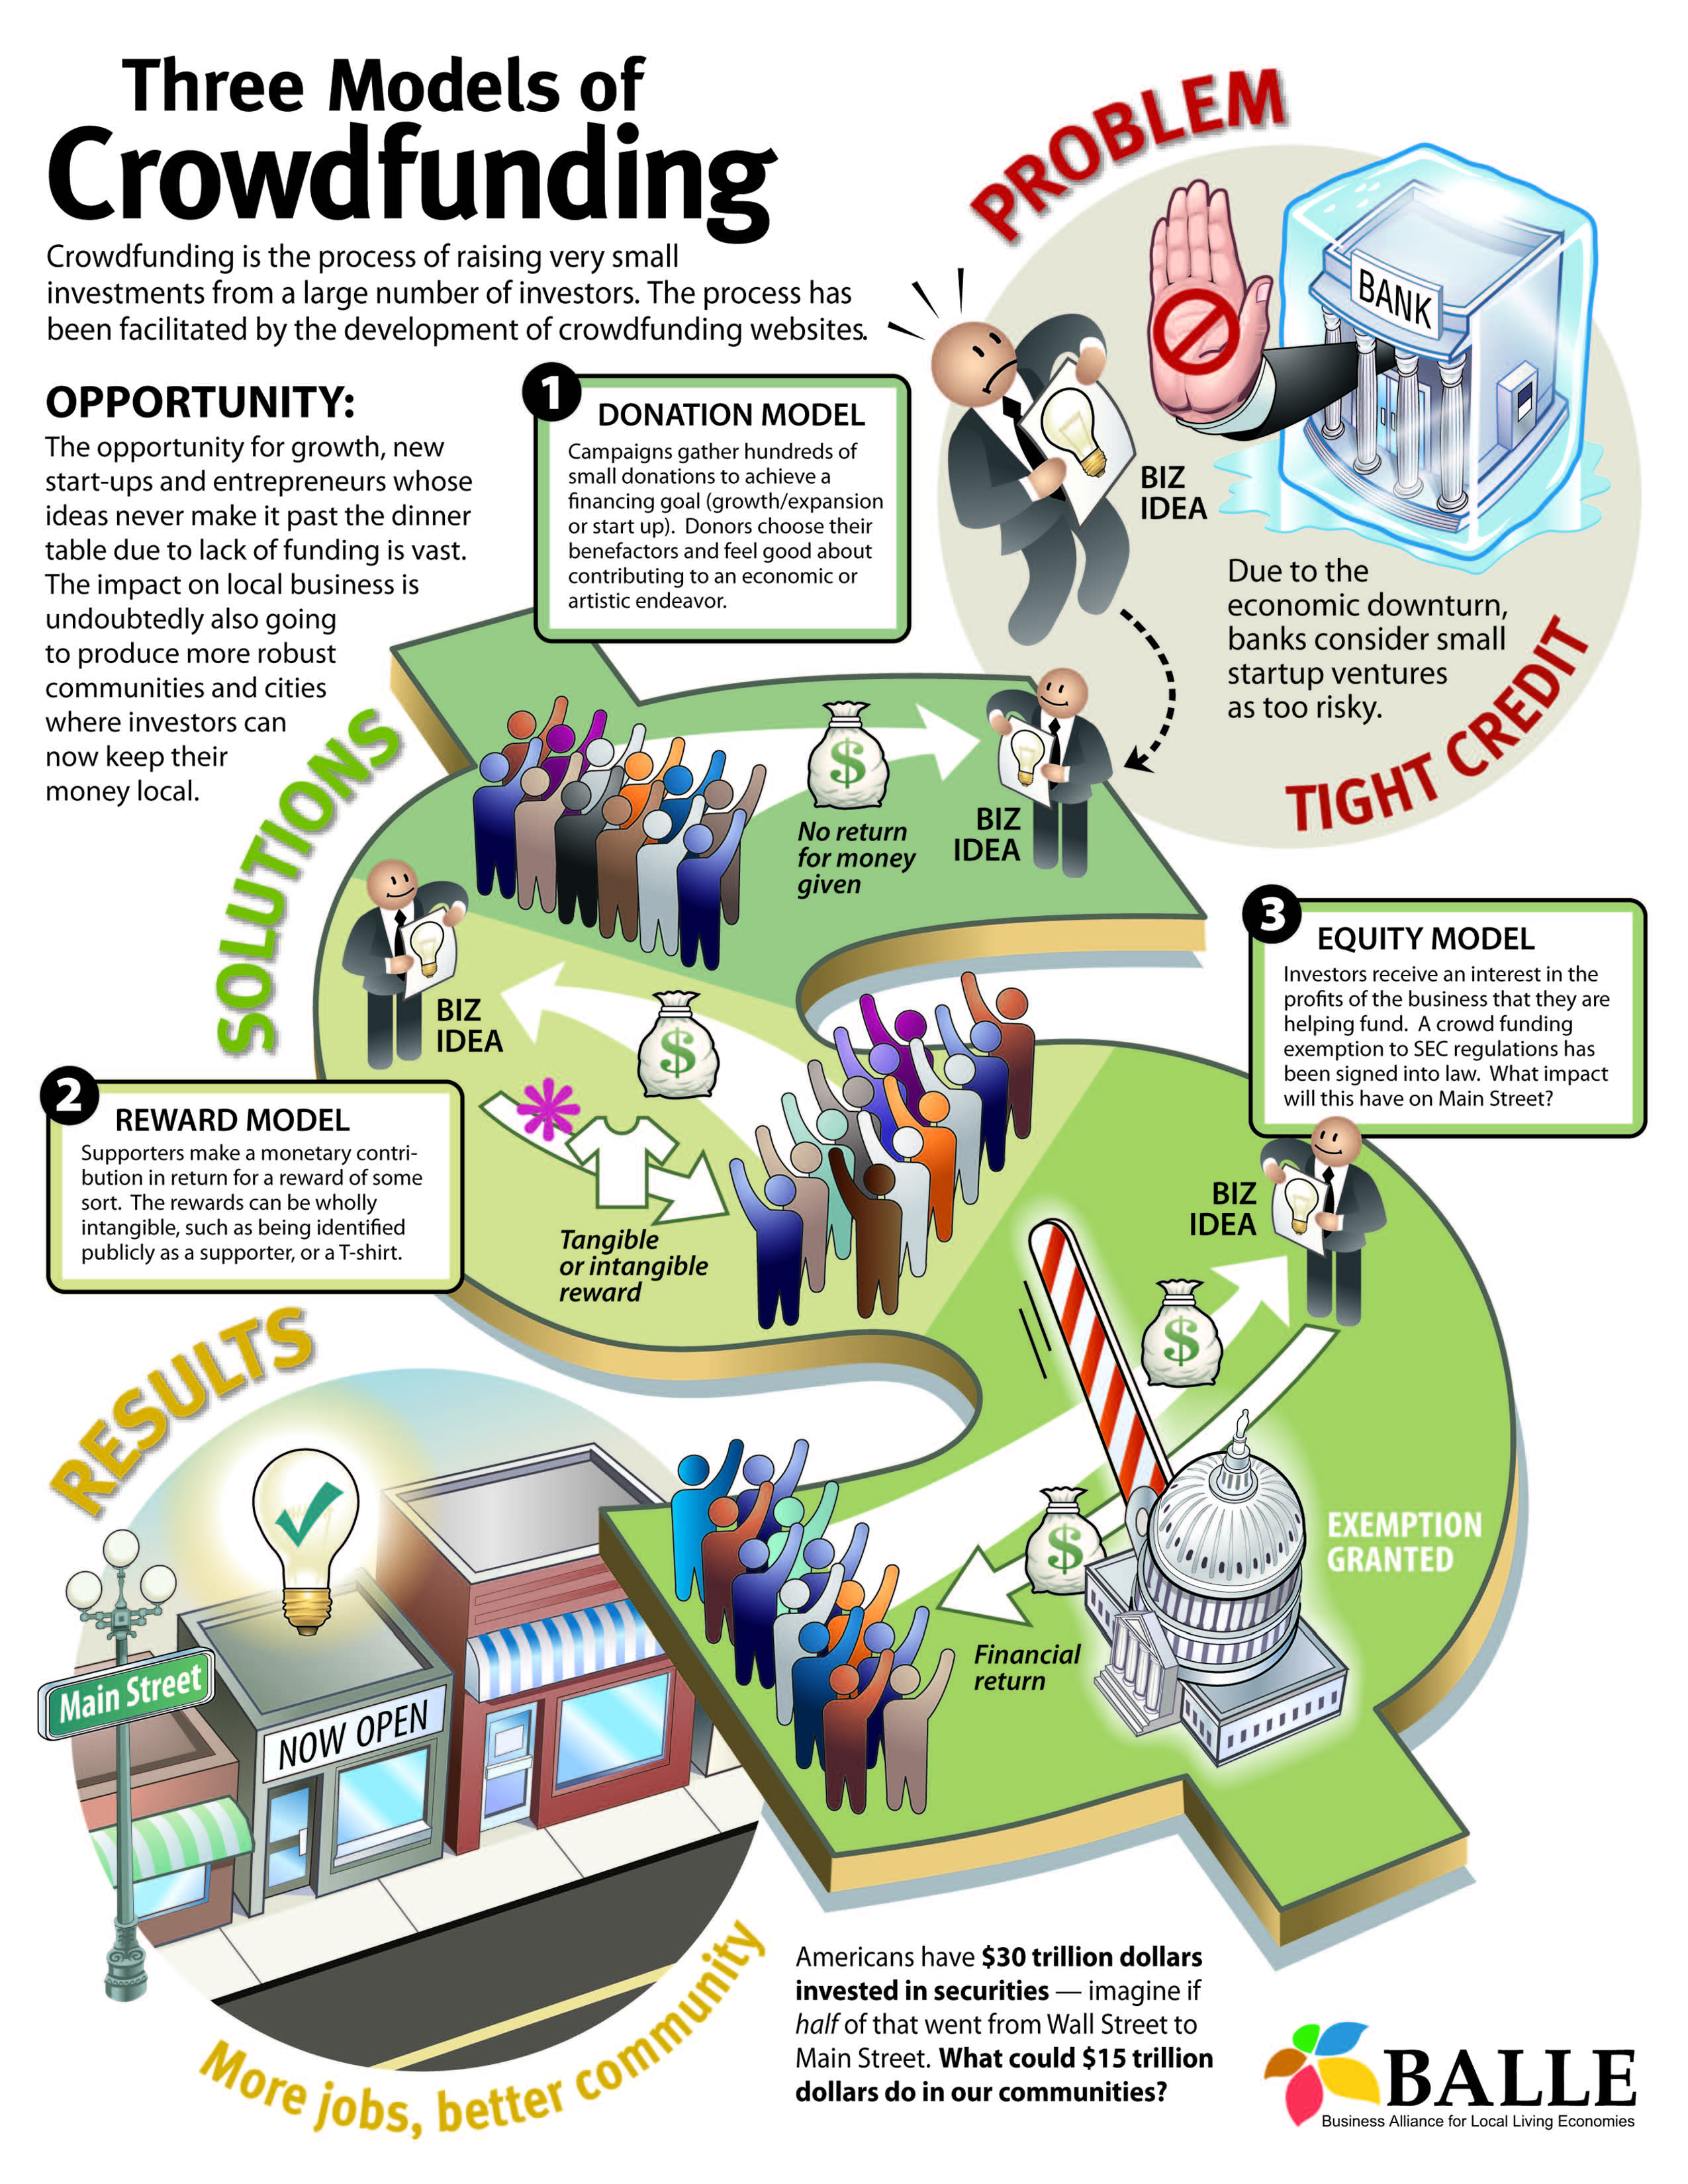 Infographic done by Balle